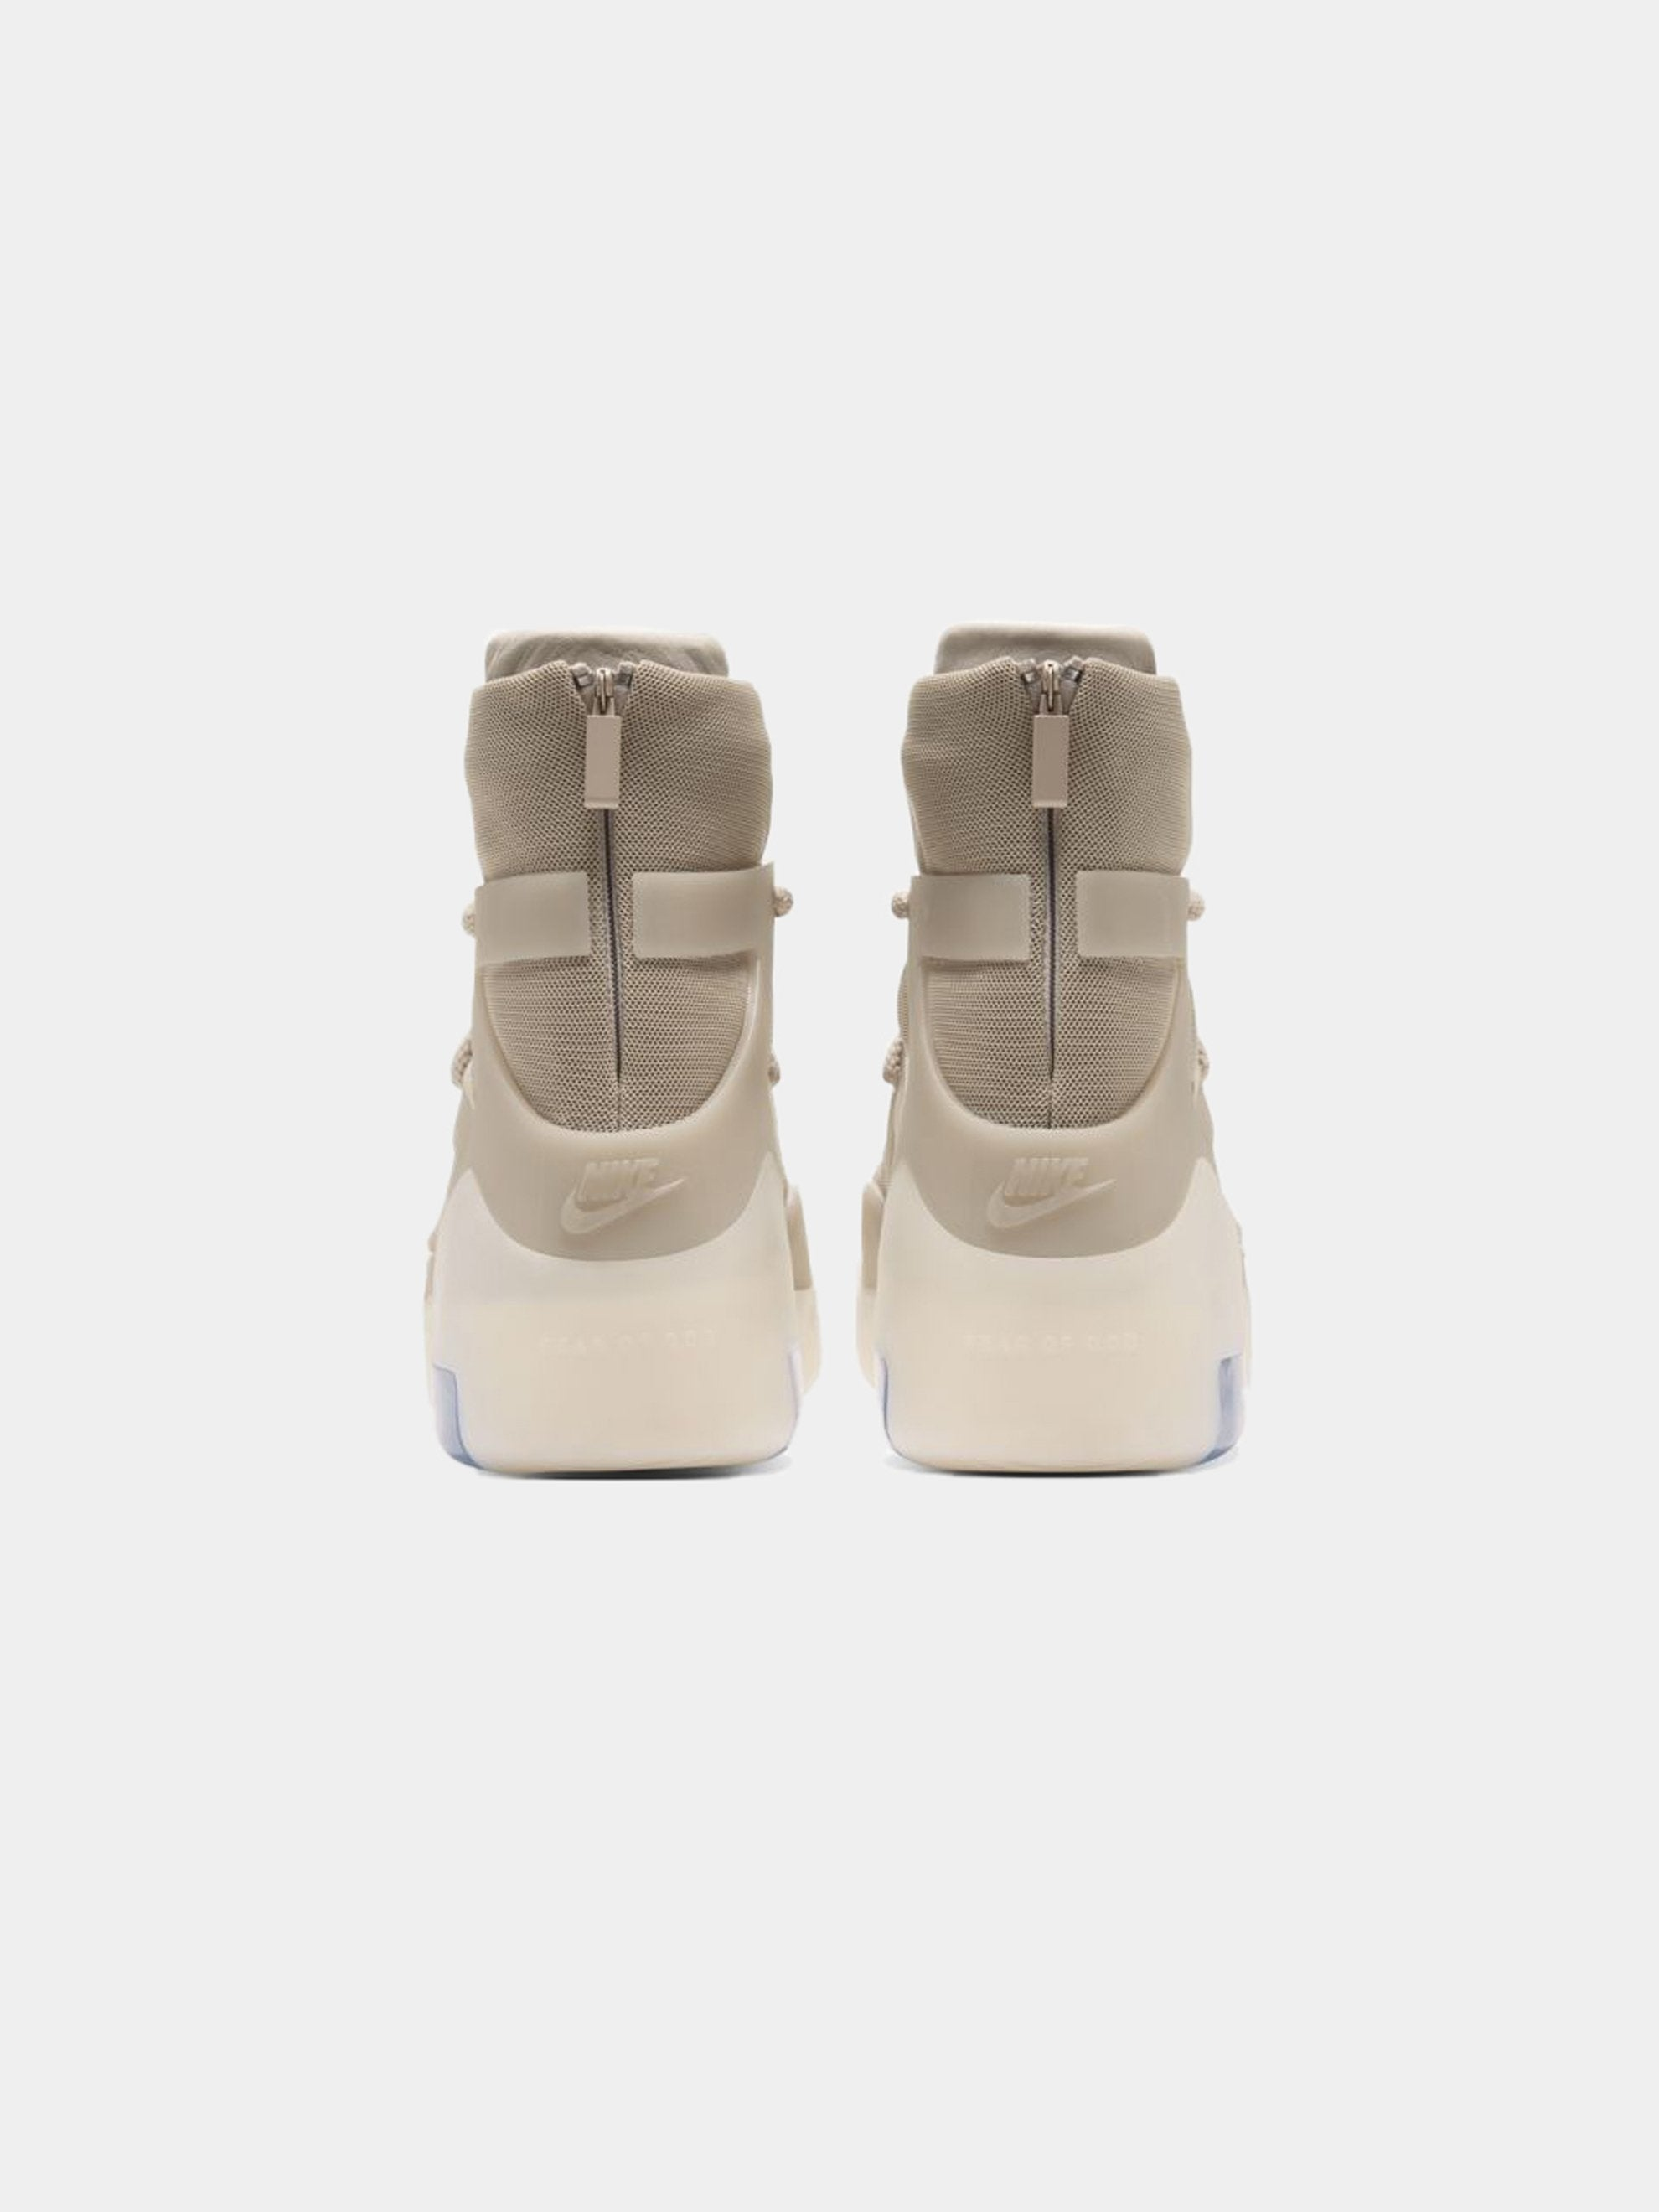 Multi-Color/String Oatmeal Nike Air Fear of God 1 3